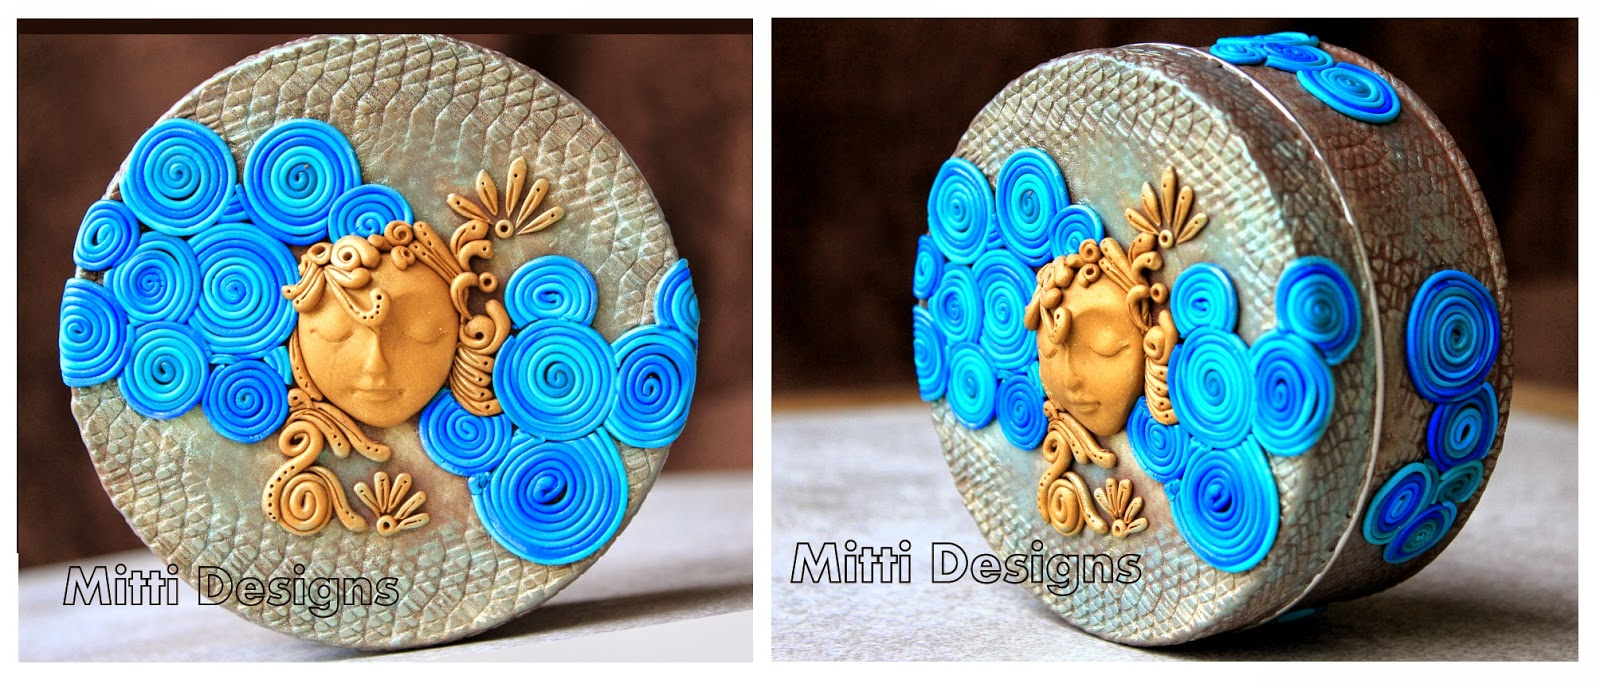 polymer clay, stainless steel, tin, box, moon, clouds, handmade, mitti designs, unique